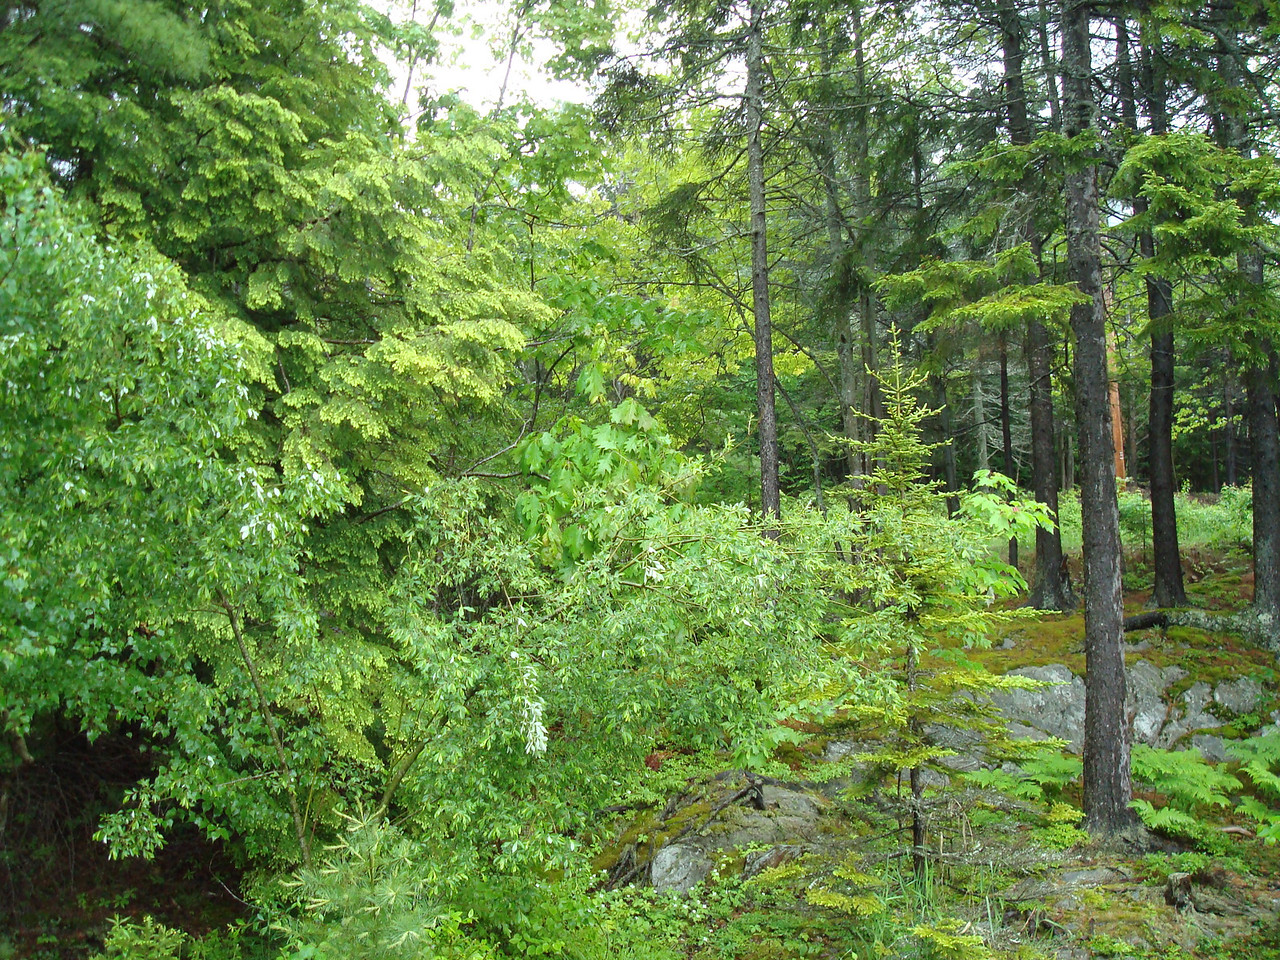 The forest that surrounds Roxi's house